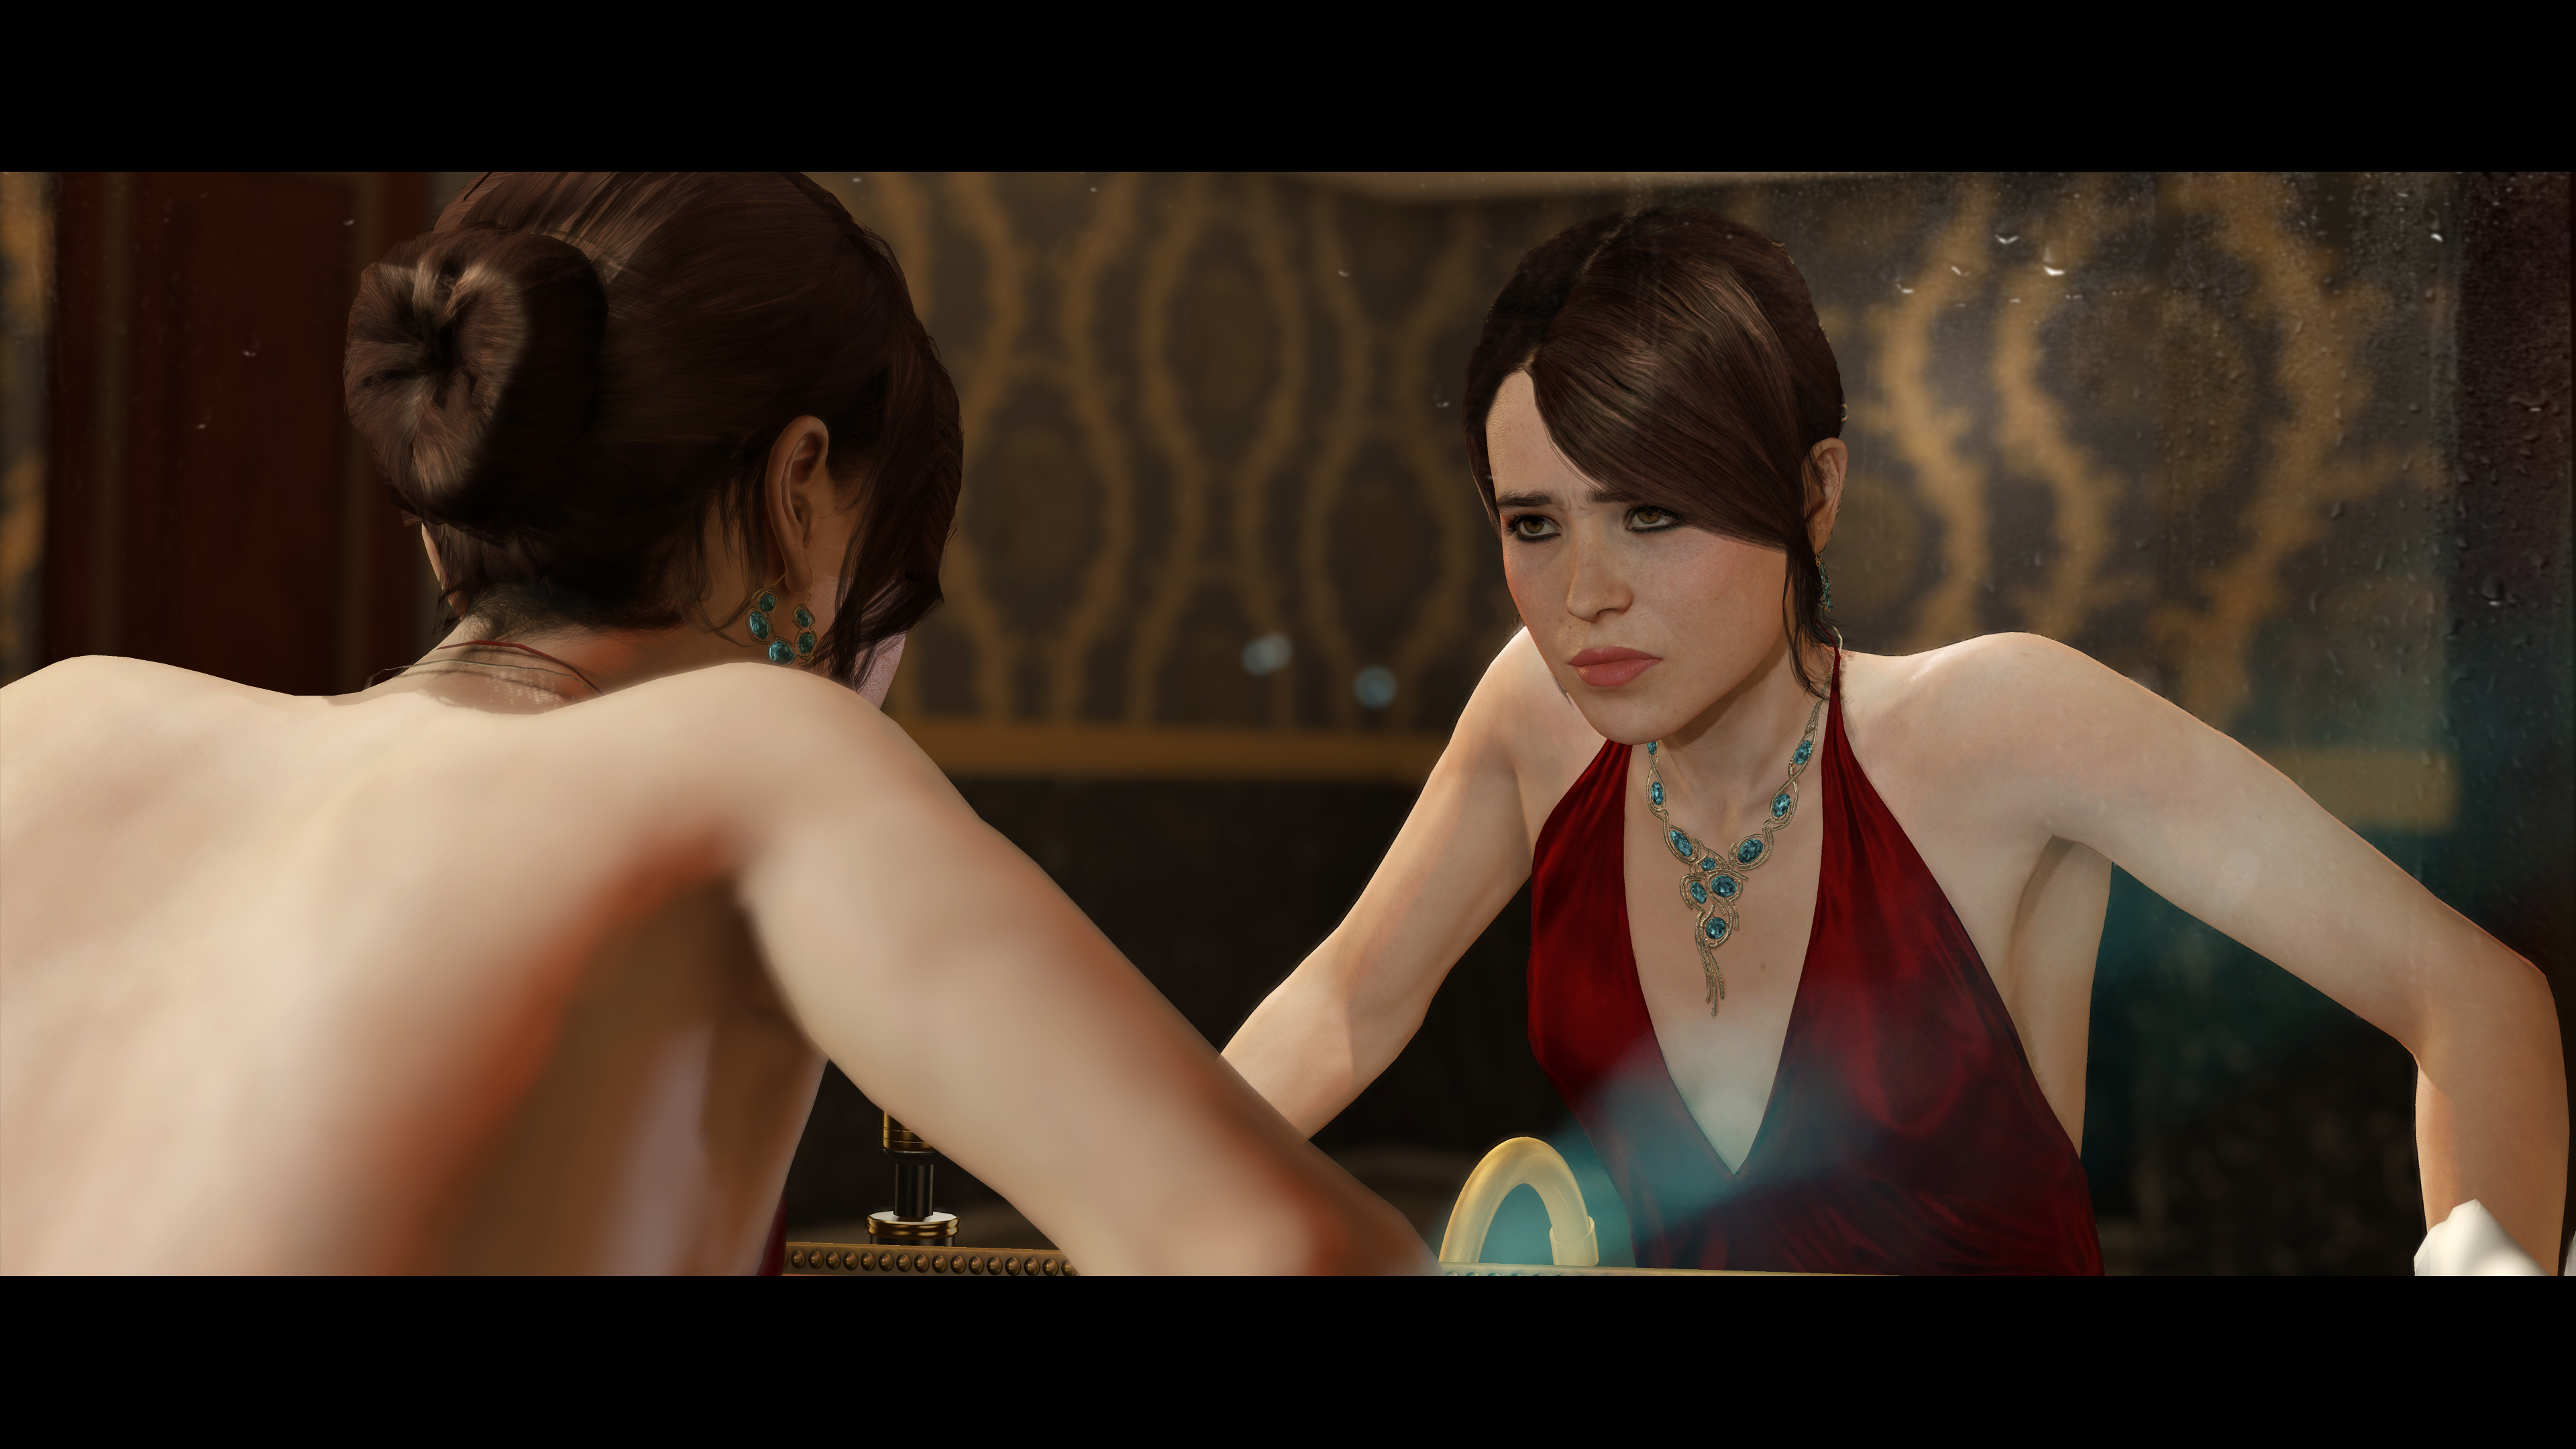 beyond: two souls review - playstation 3 image at gameplanet new zealand